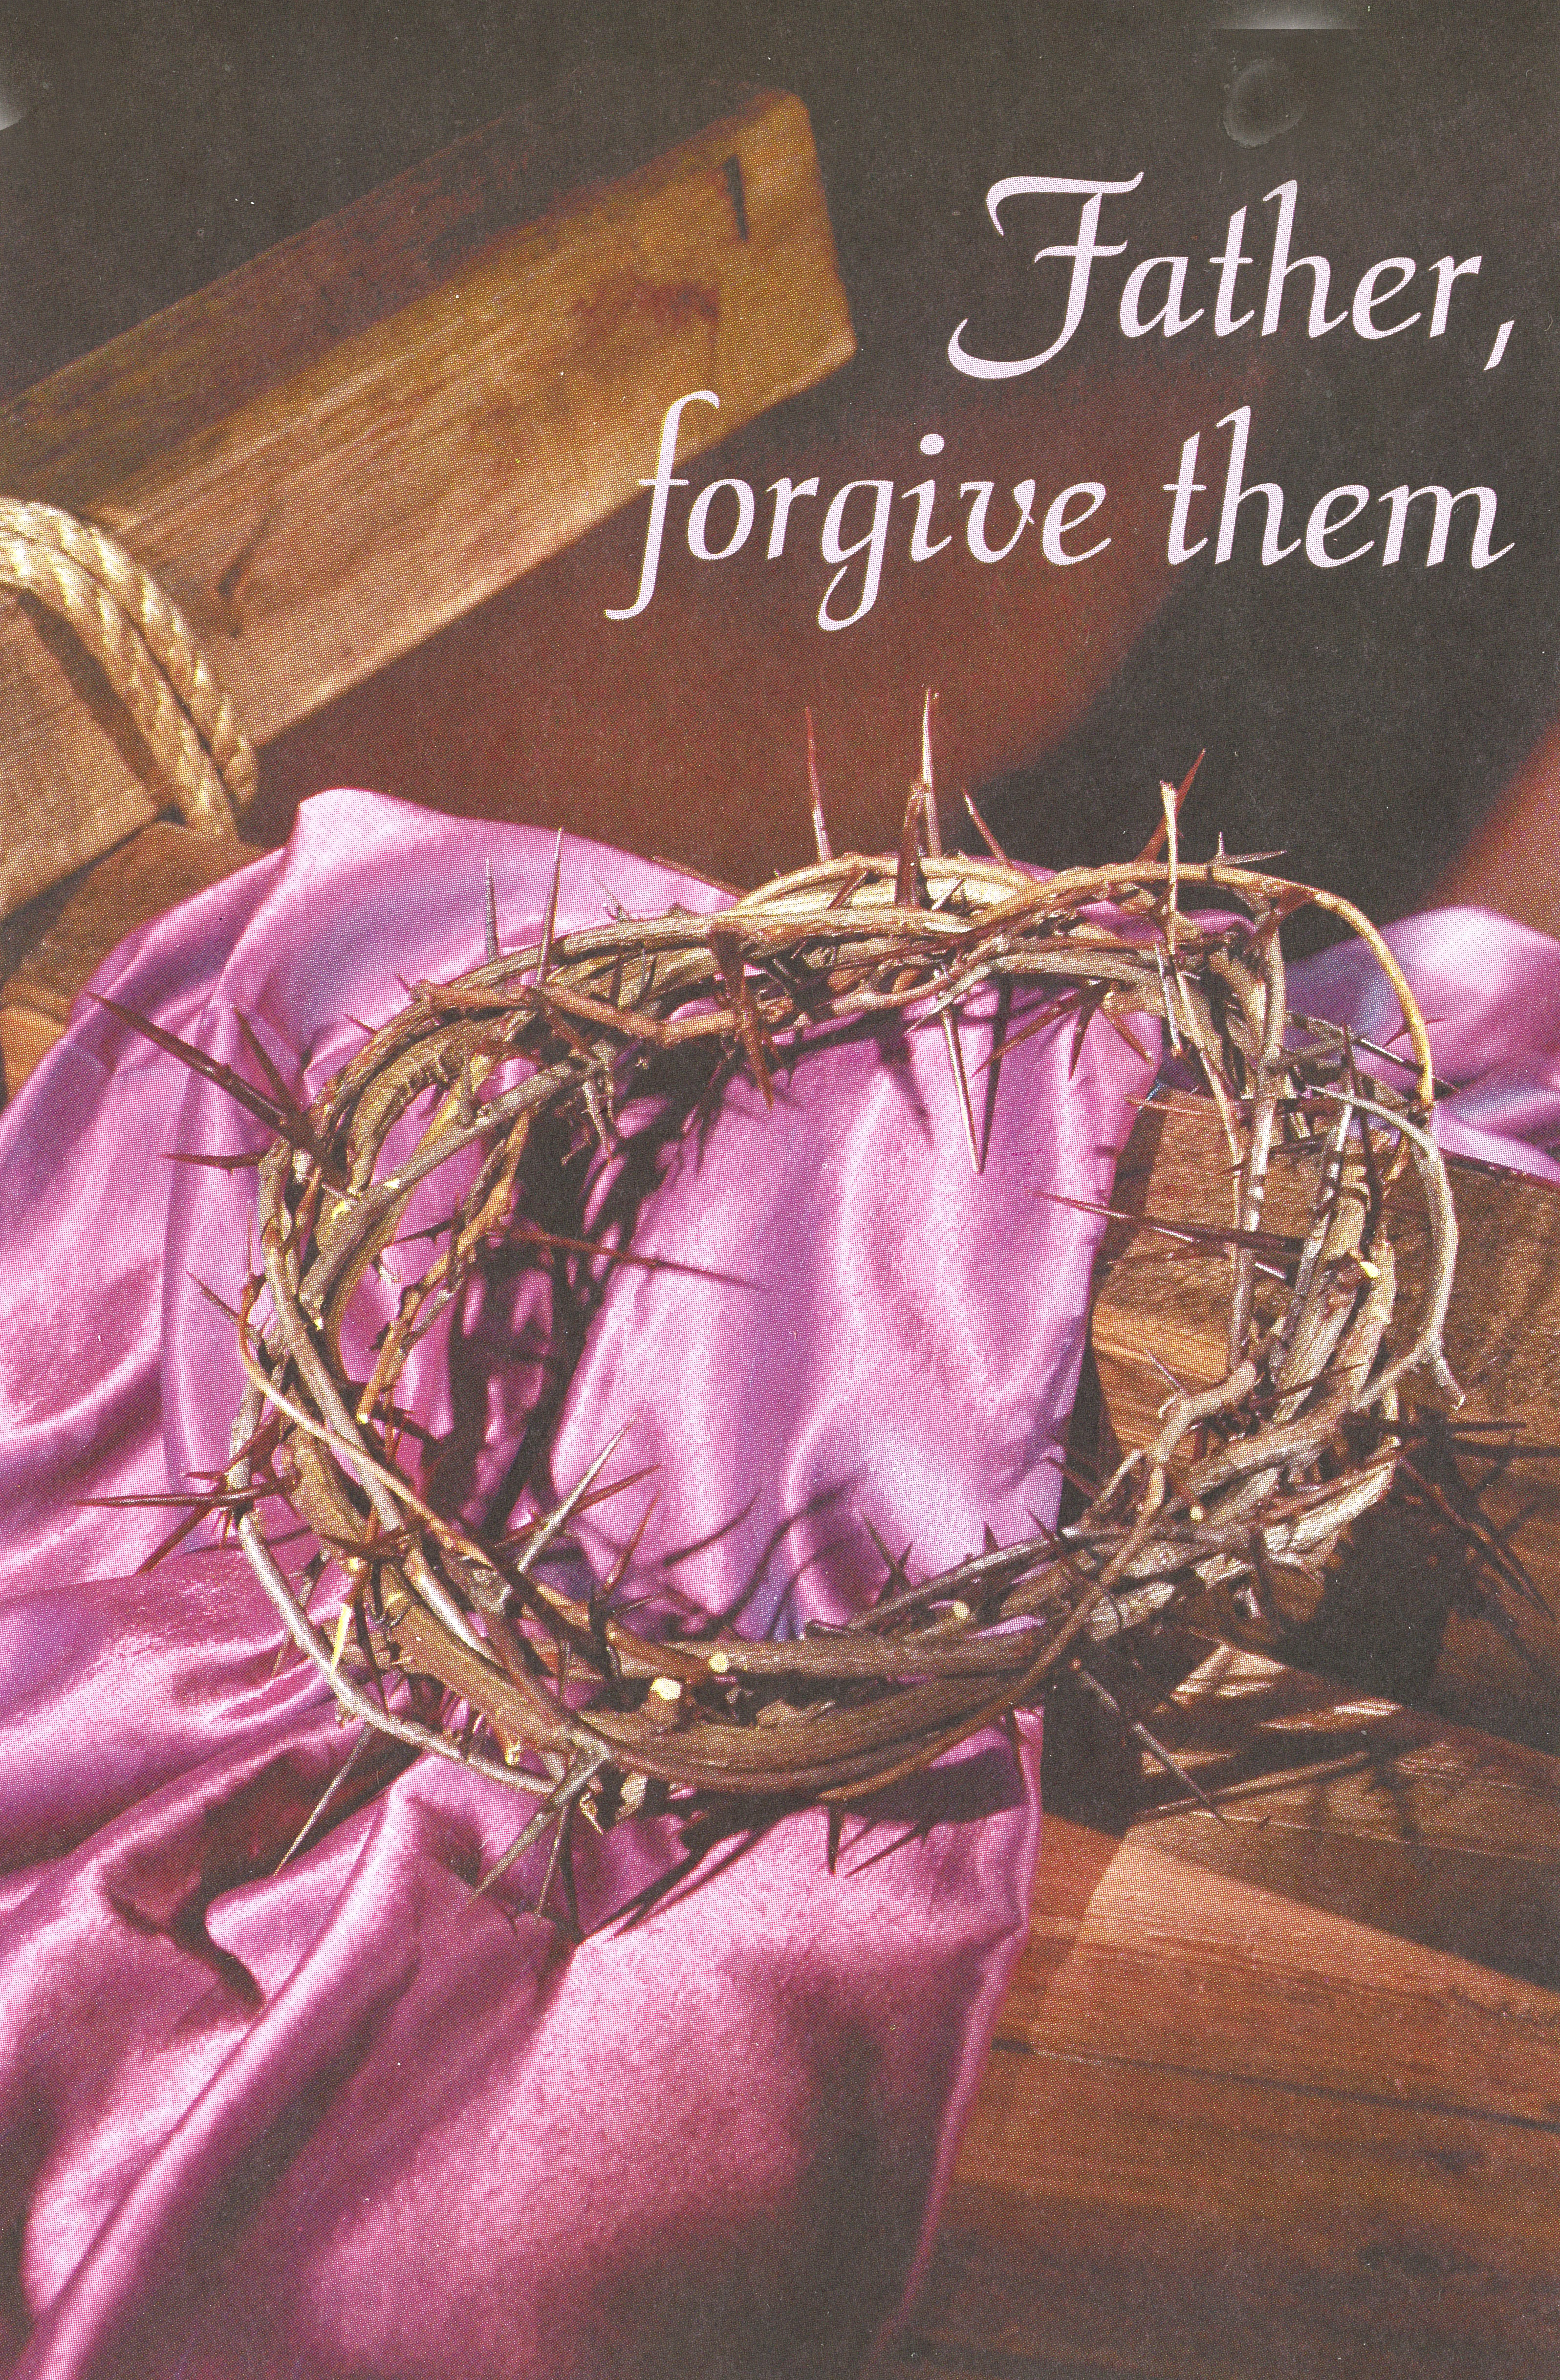 Bulletin Covers Lent Father Forgive Them-9295